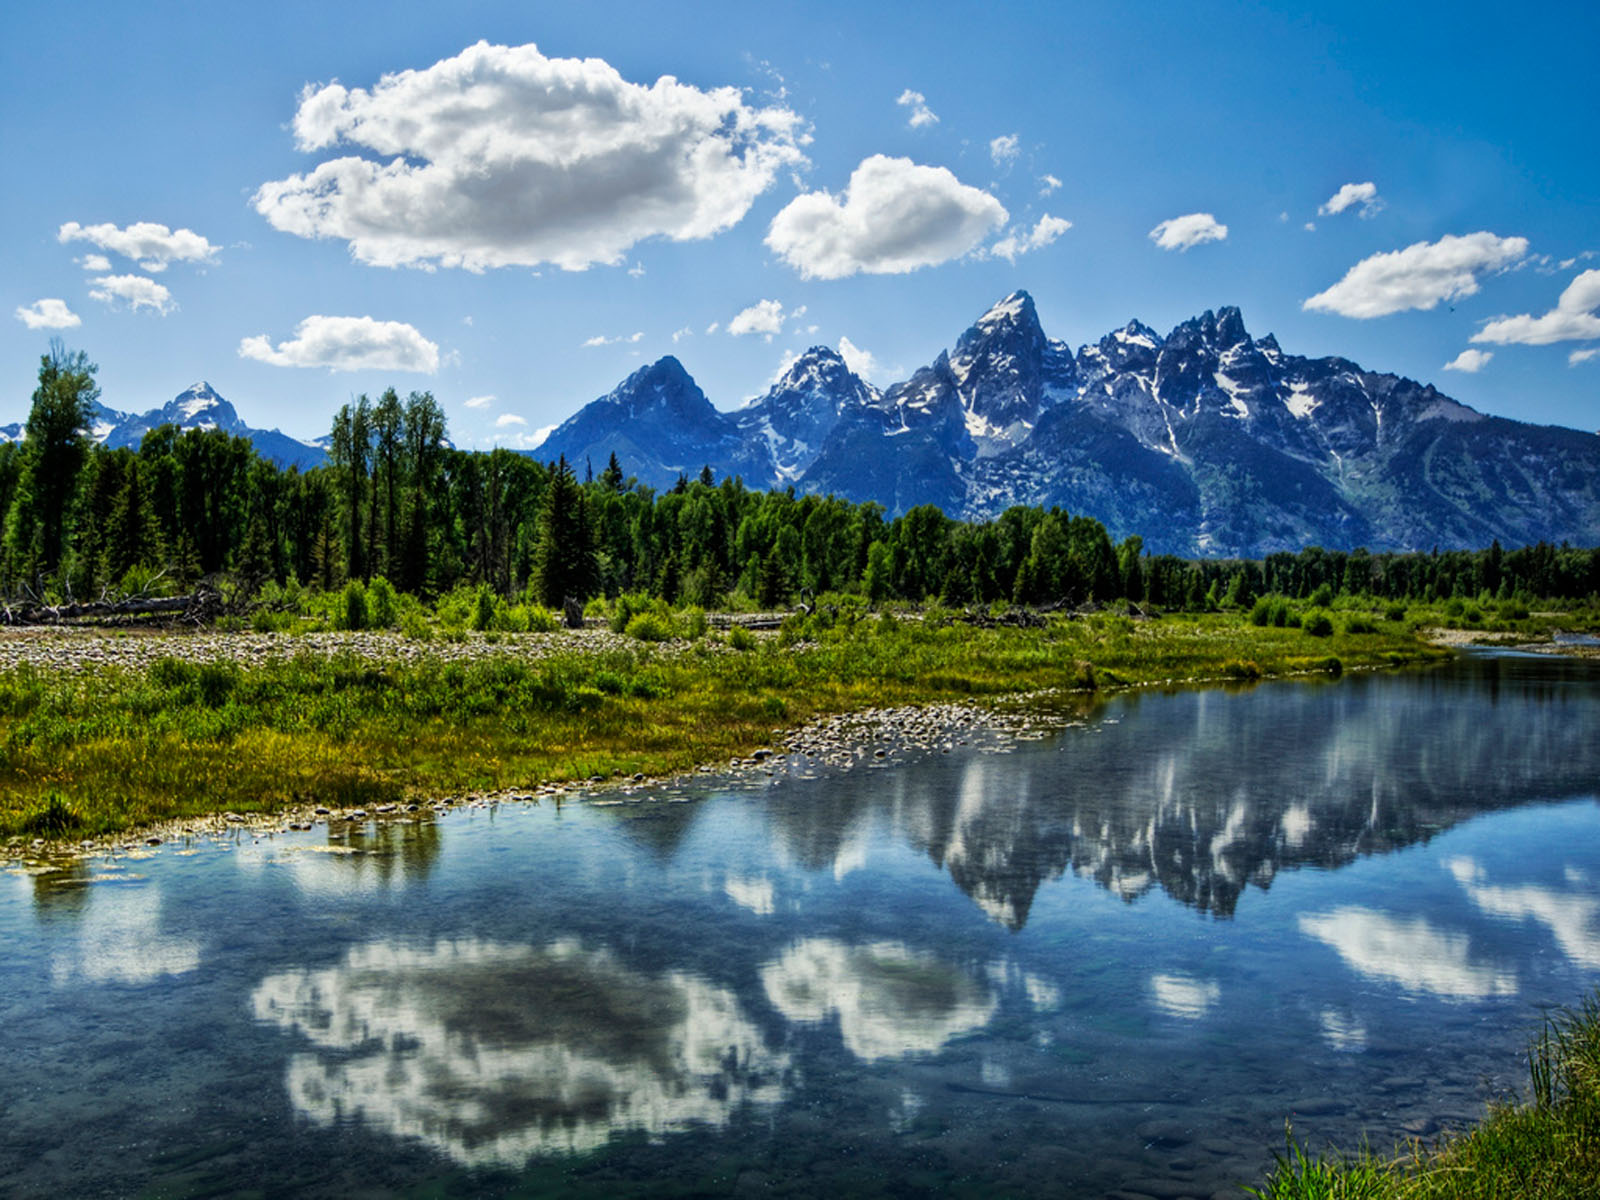 Wallpapers Grand Teton National Park Wallpapers HD Wallpapers Download Free Images Wallpaper [1000image.com]